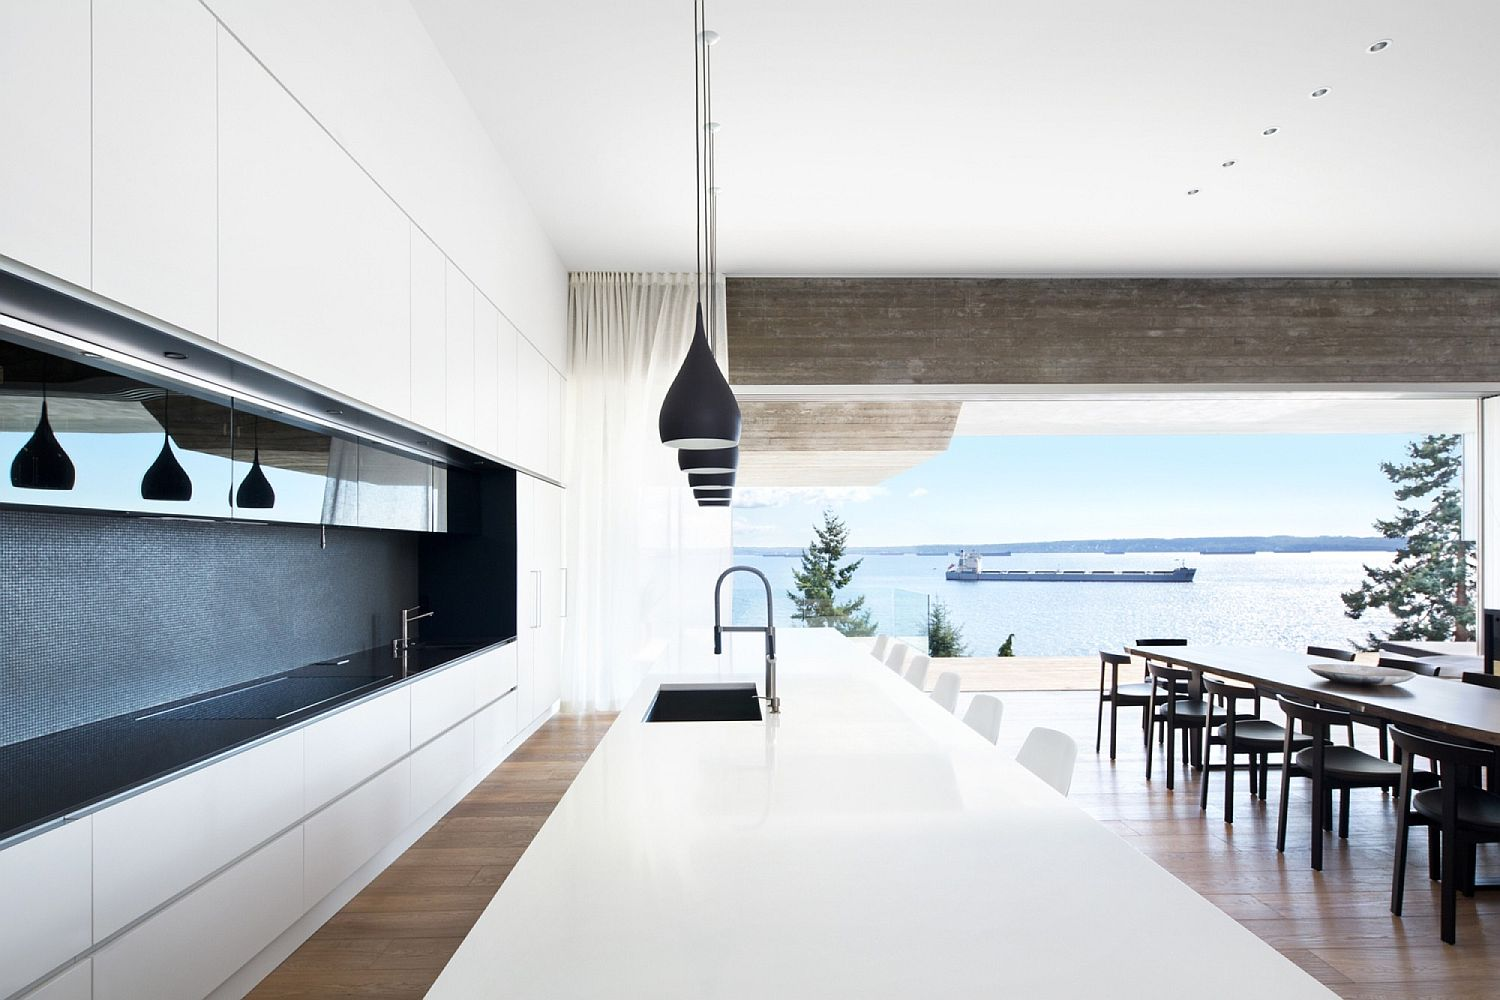 Dashing minimal kitchen in whit with large island and black pendant lights